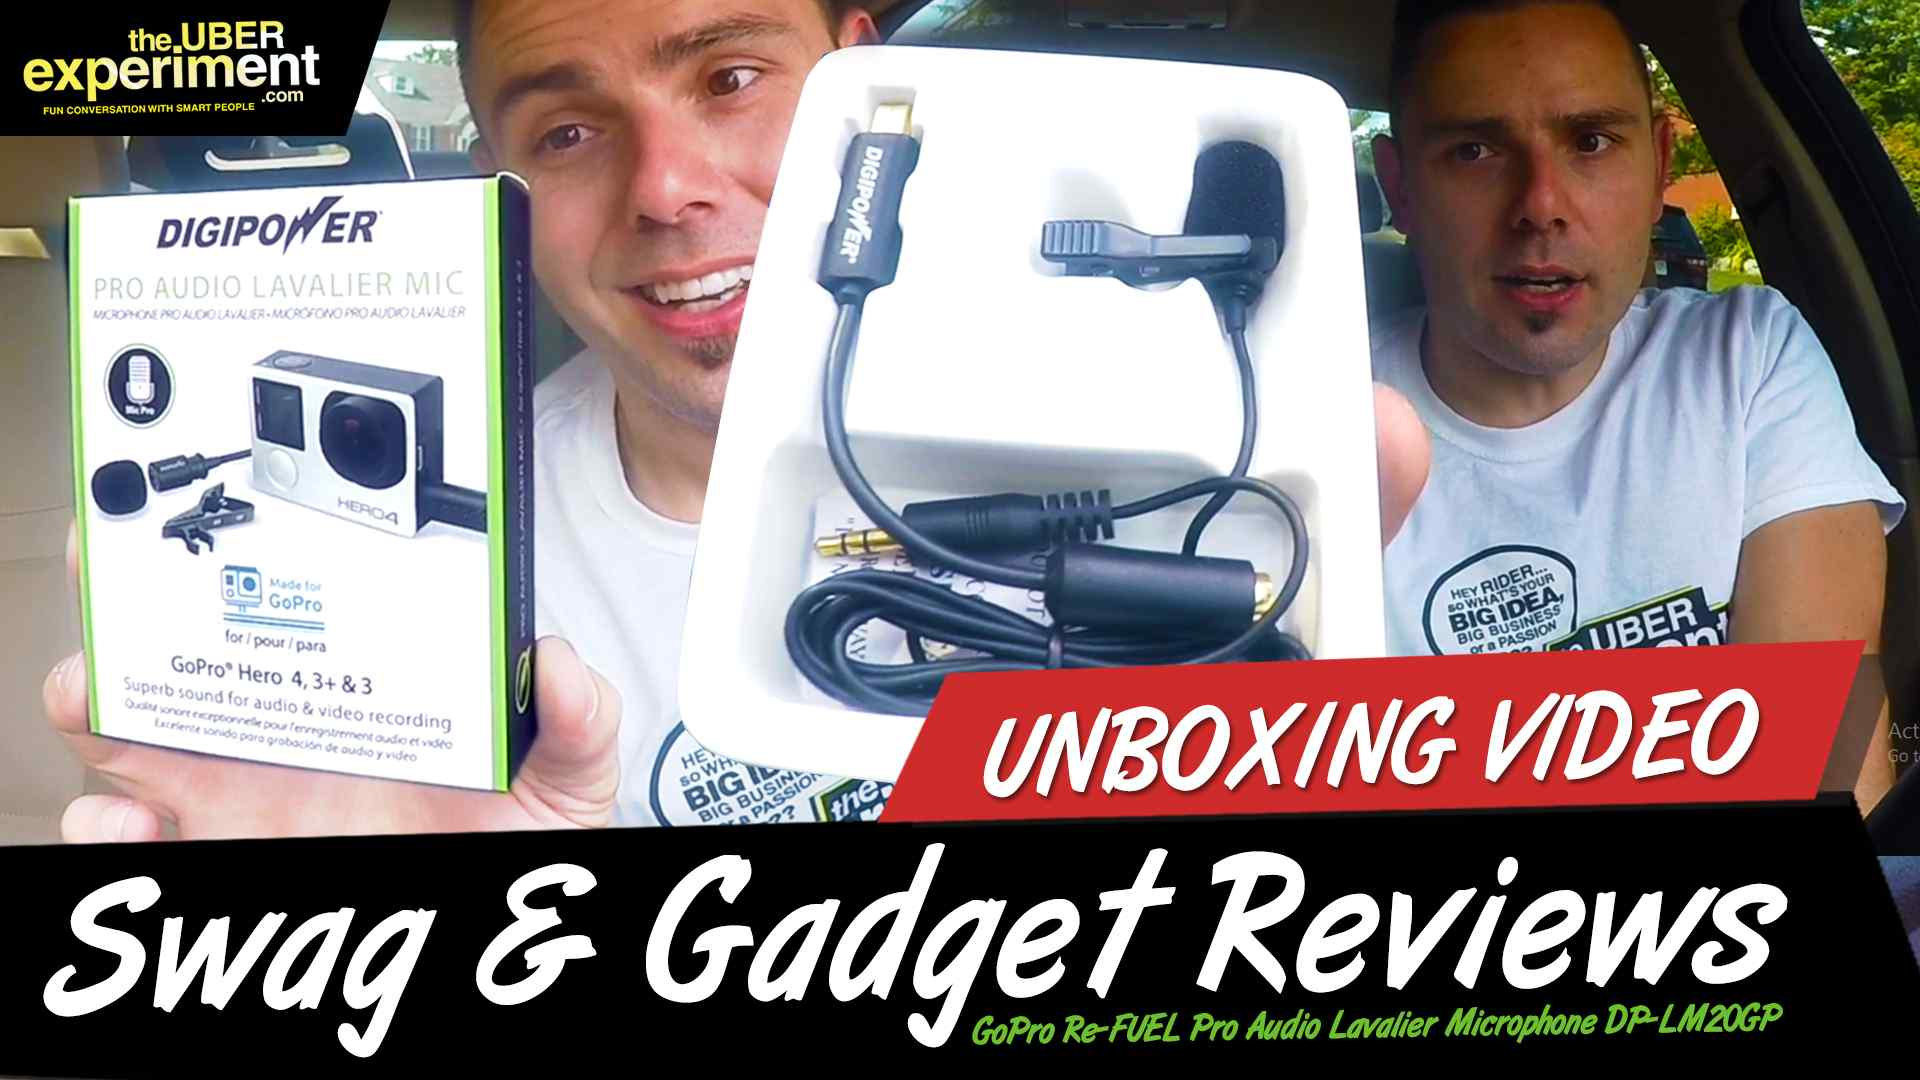 Unboxing & Gadget Review of GoPro Re-FUEL Pro Audio Lavalier Microphone DP-LM20GP - by The Uber Experiment